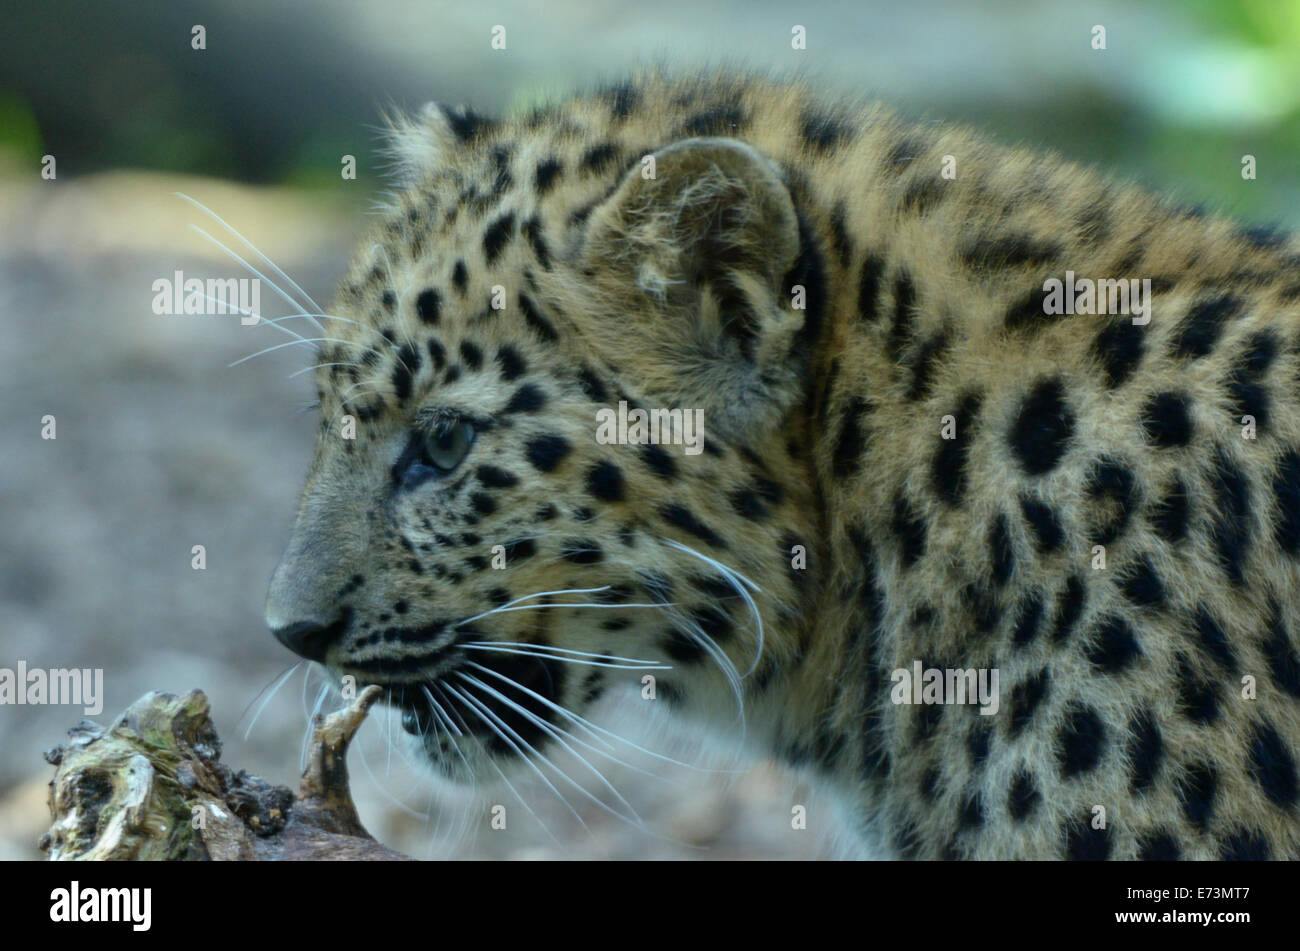 Amur leopard (Panthera pardus orientalis) is a leopard subspecies native to the Primorye region of southeastern - Stock Image